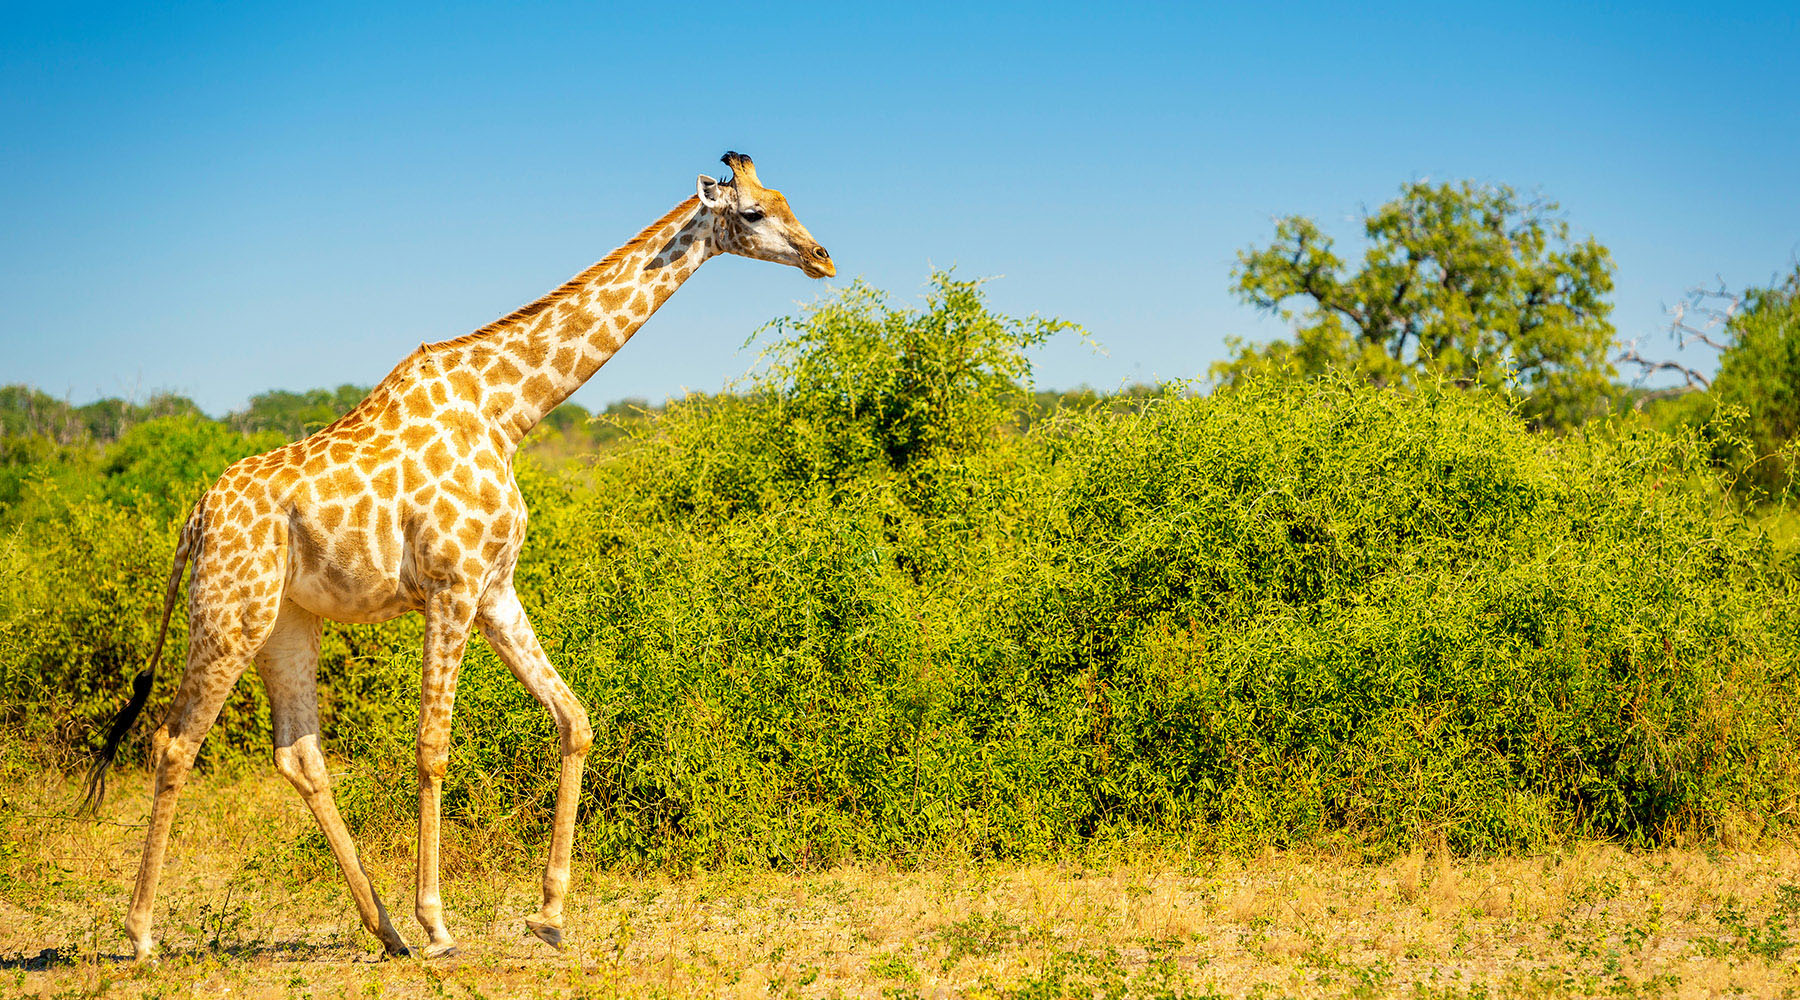 10-Night S. Africa & 5-Night Post Micato Safari